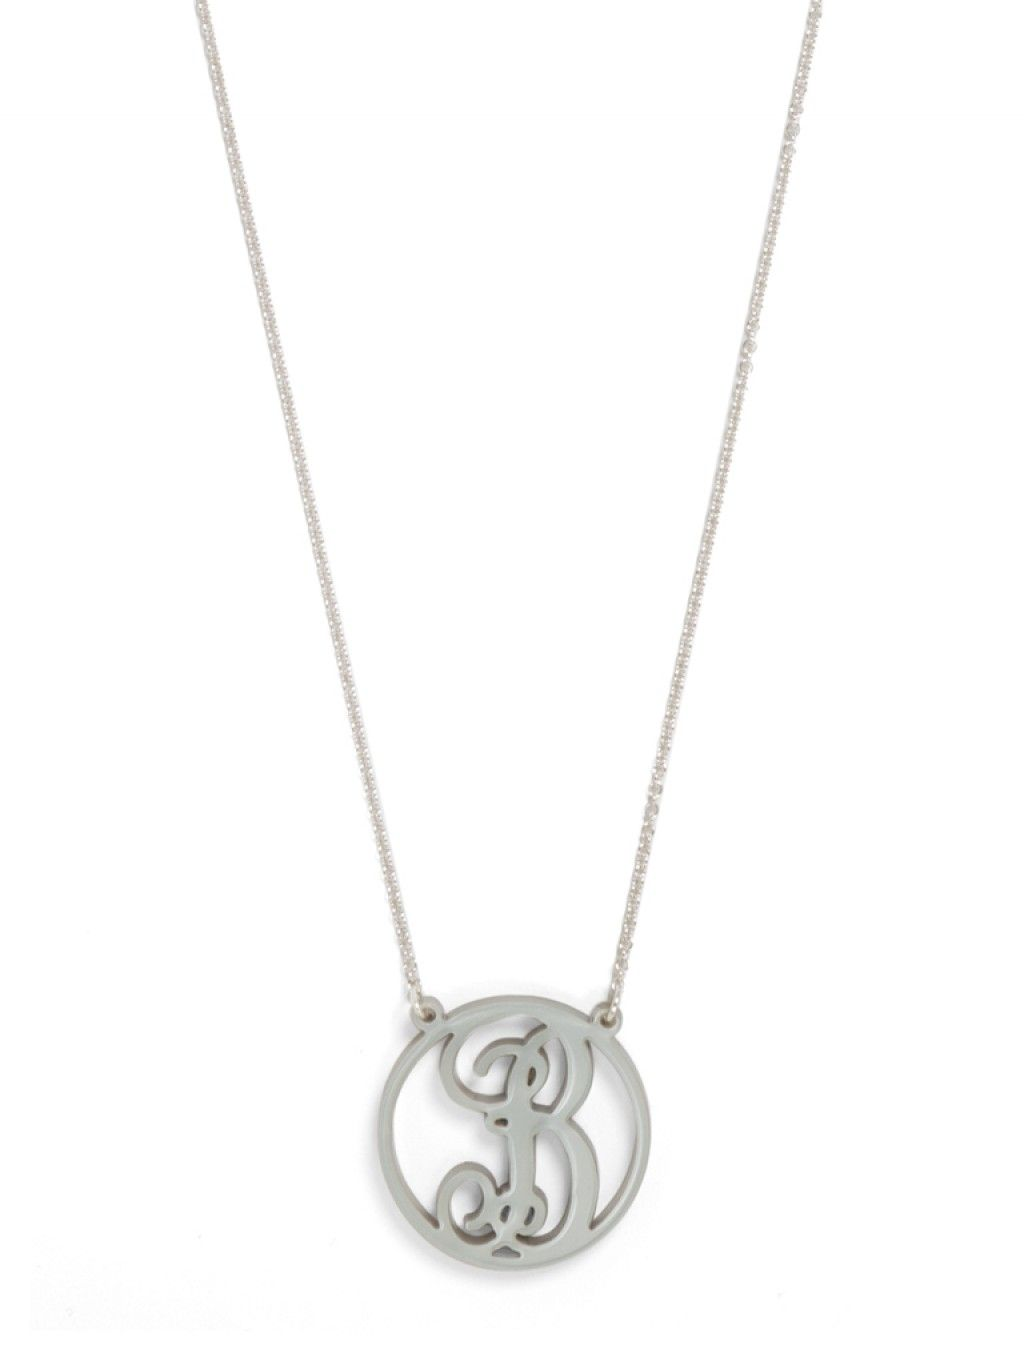 Acrylic Script Initial Pendant (available in 21 different colors)